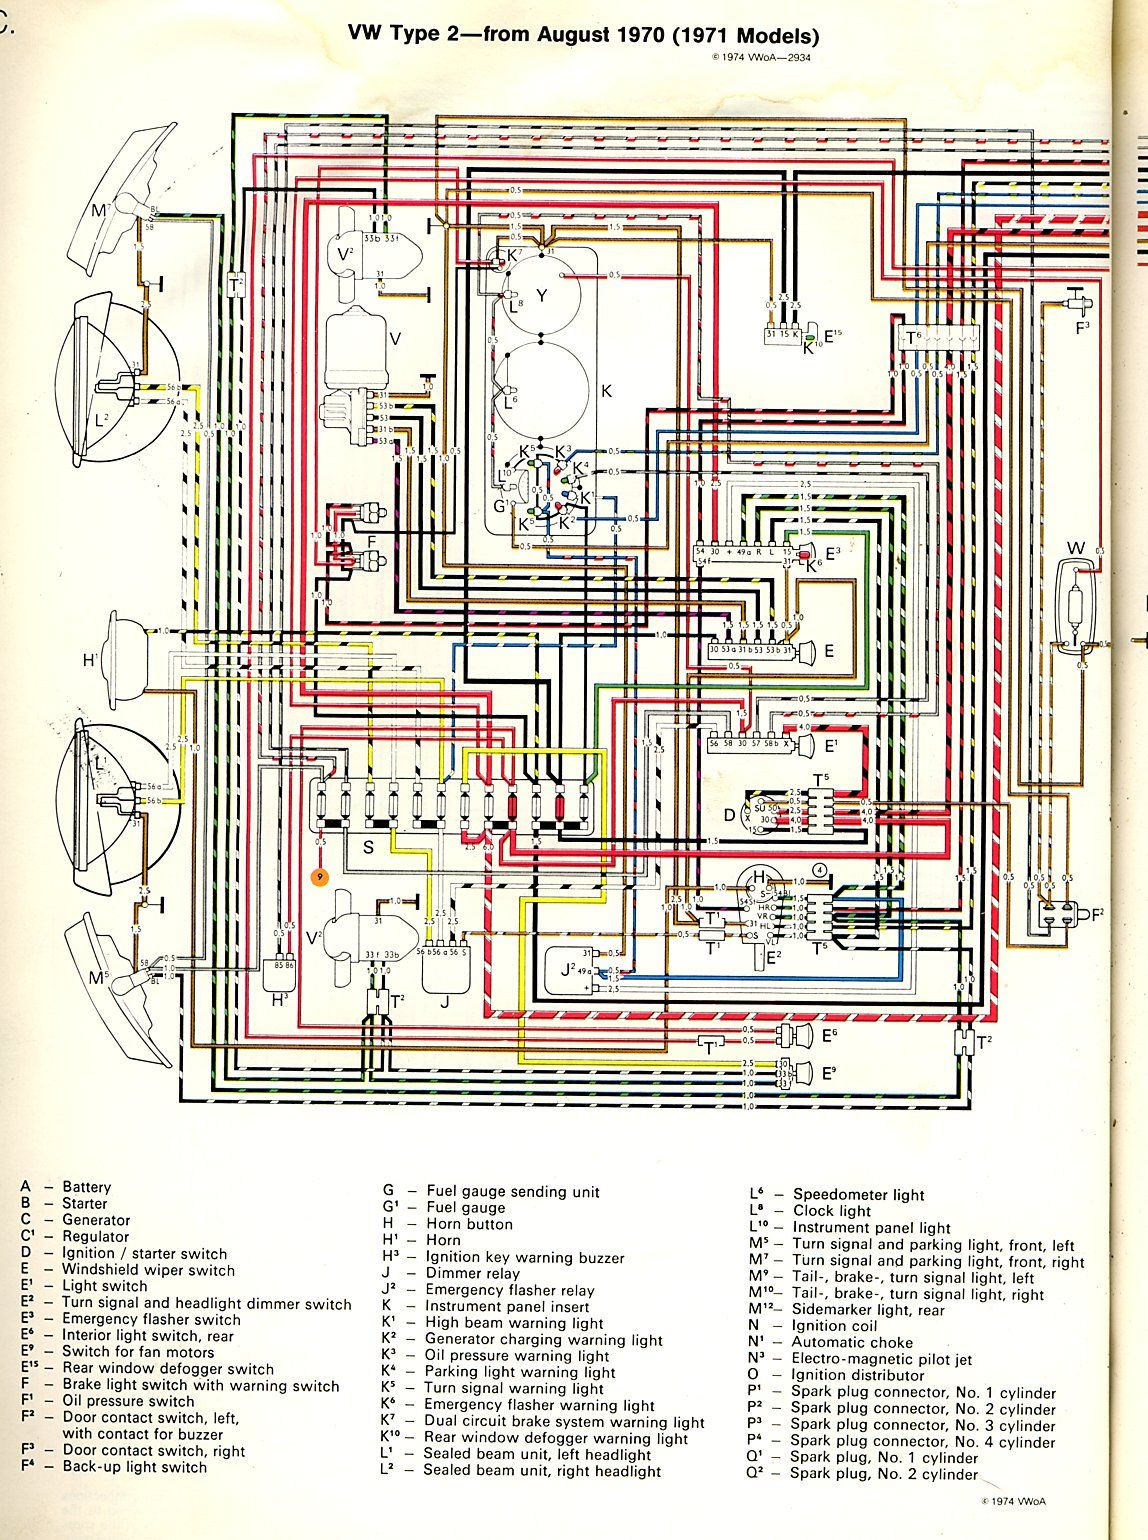 2002 Bluebird Bus Wiring Diagram Library Blue Bird Transit Engine 1971 Vw Another Blog About U2022 Rh Ok2 Infoservice Ru